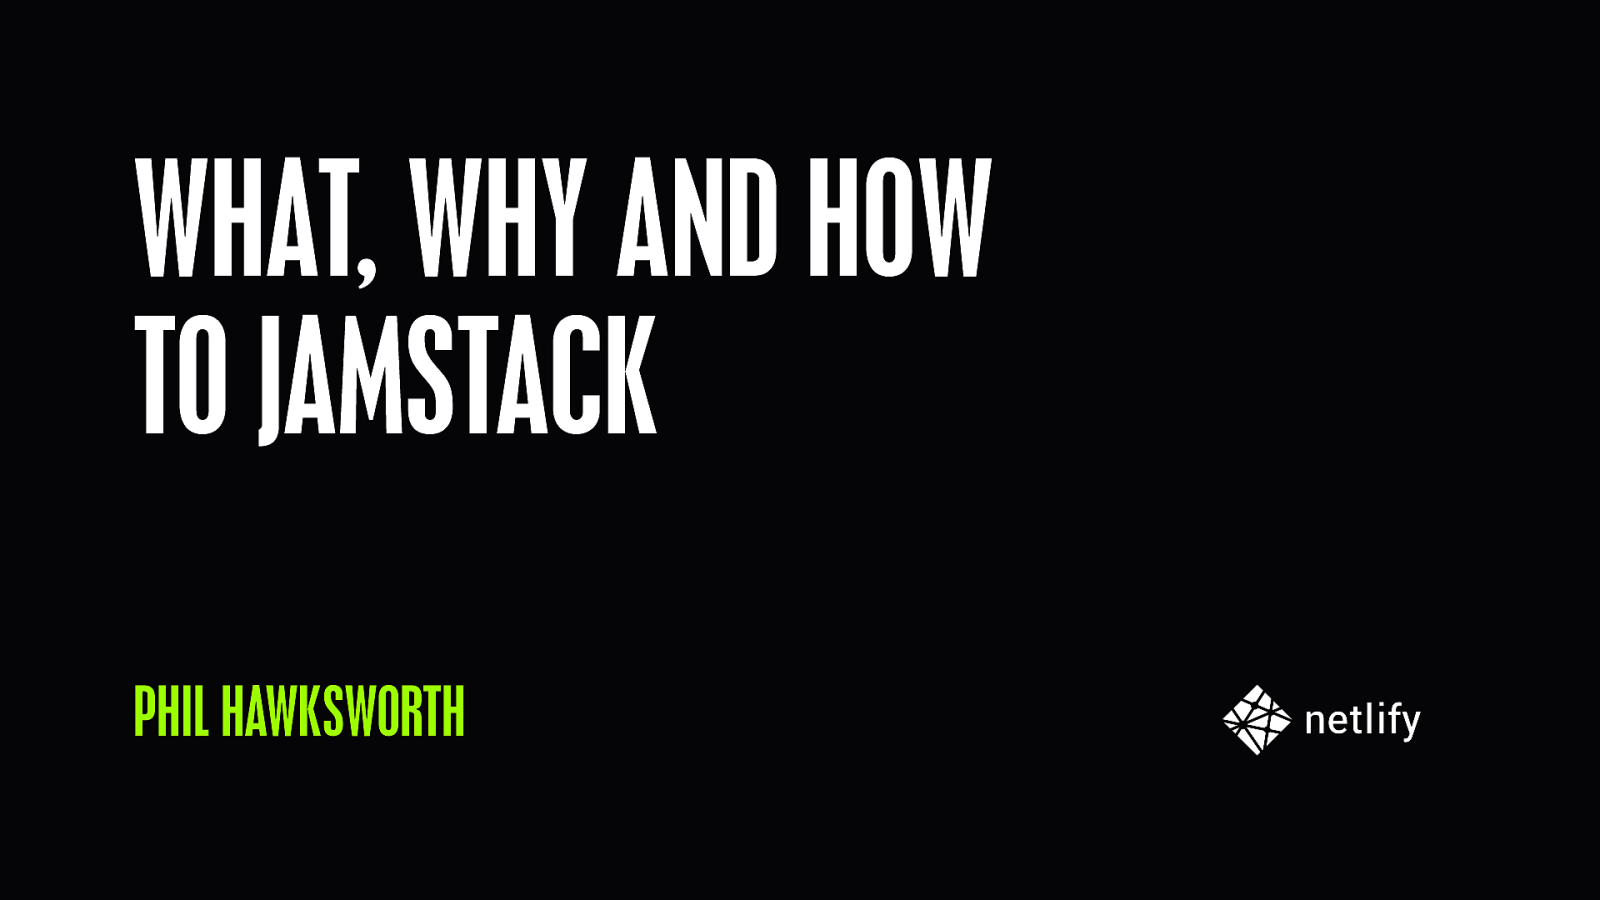 What, why and how to JAMstack